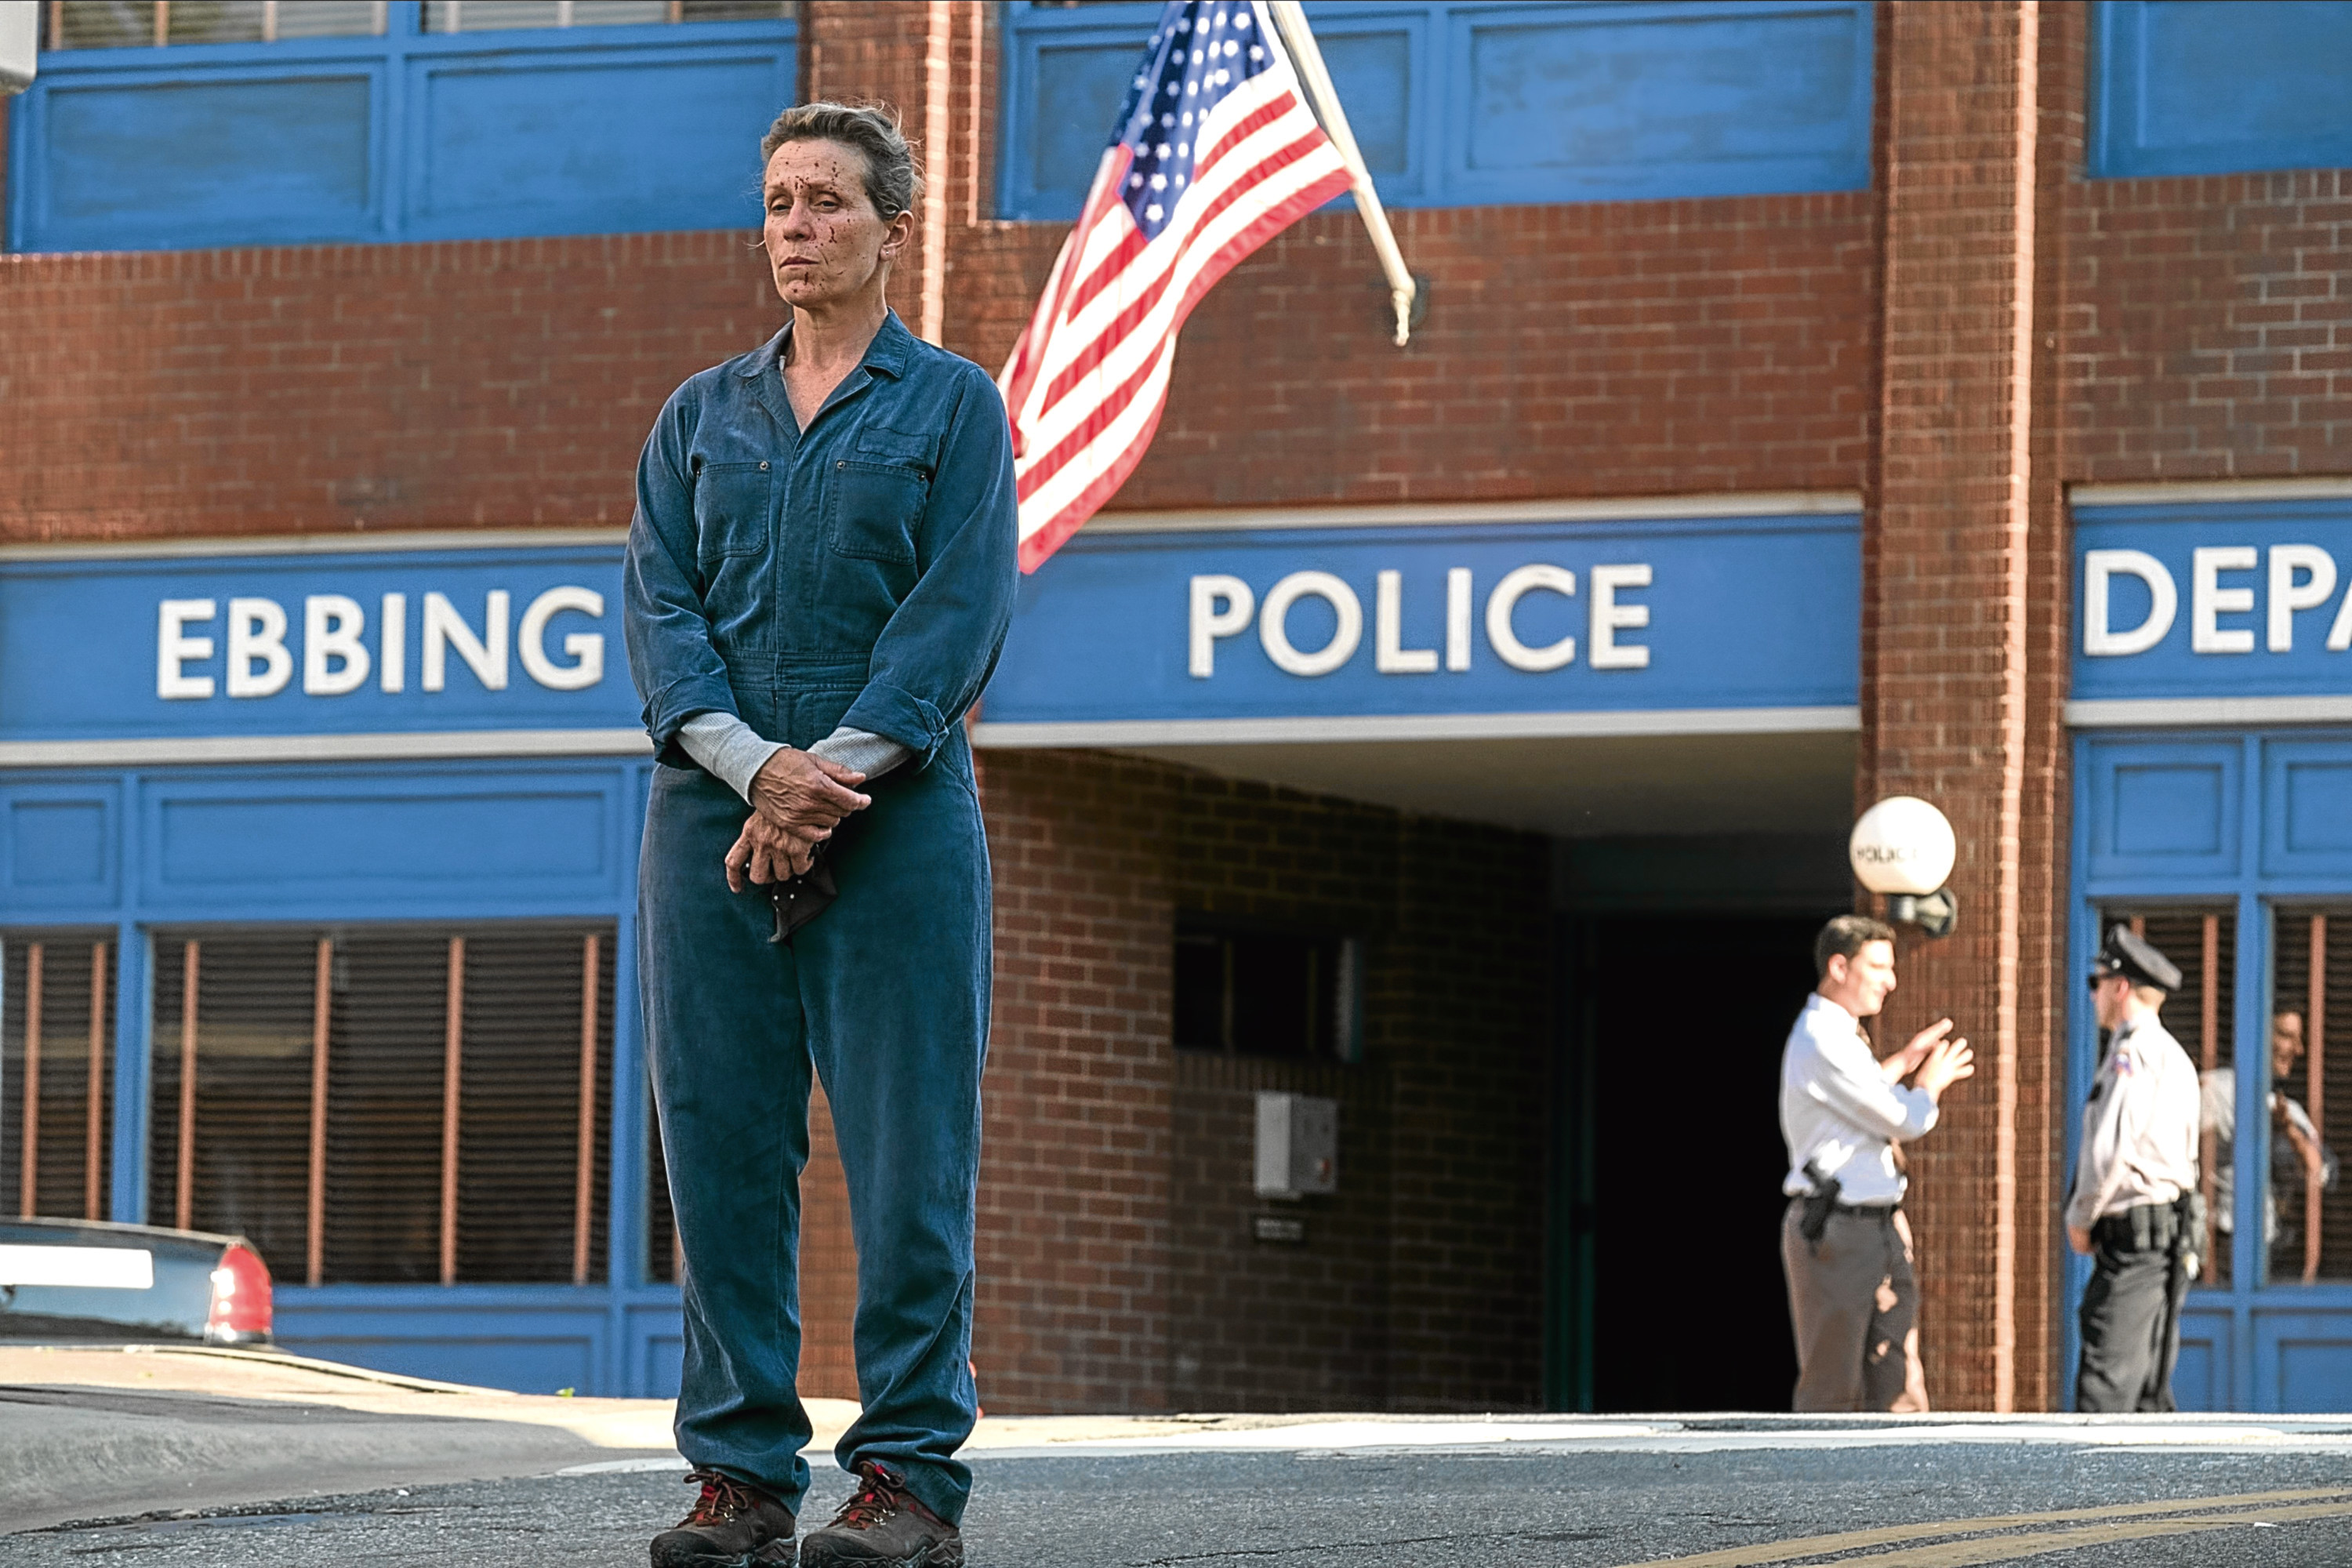 Frances McDormand in Three Billboards Outside Ebbing, Missouri (Allstar/FOX SEARCHLIGHT PICTURES)